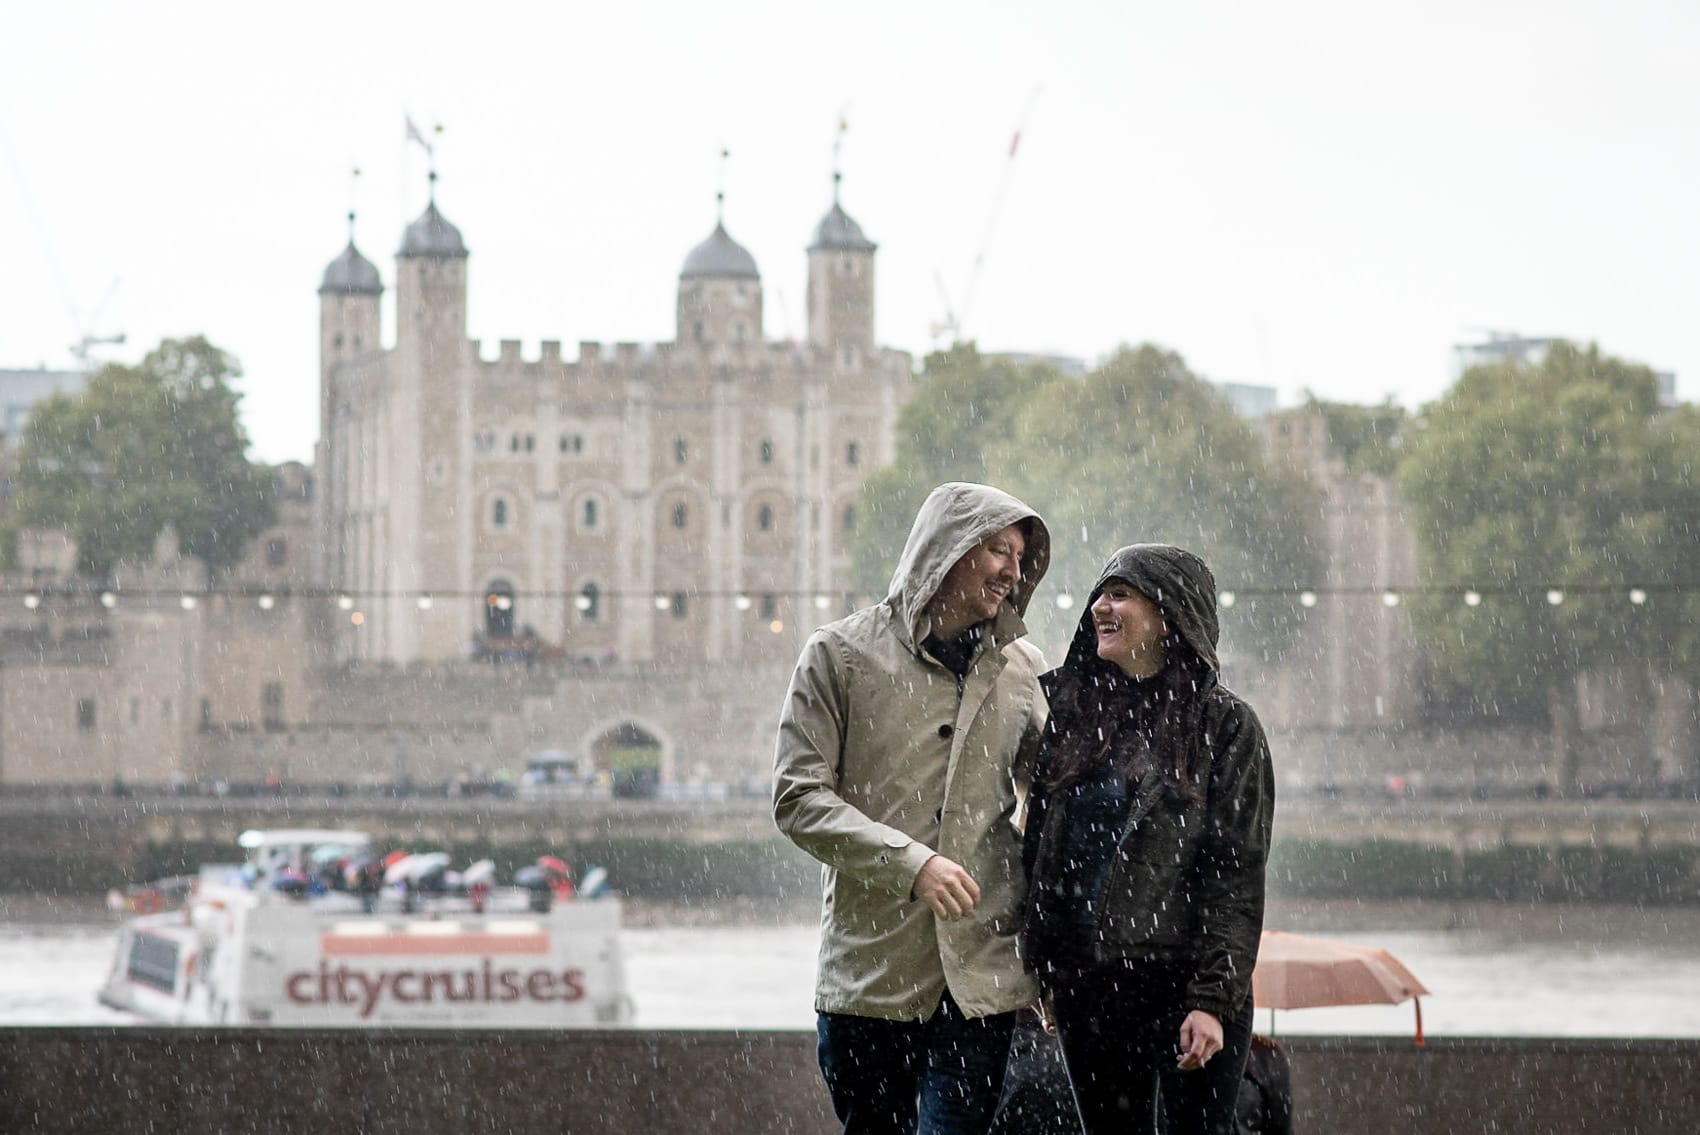 Couple laughing in heavy rain during their London engagement shoot with the Tower of London in the background